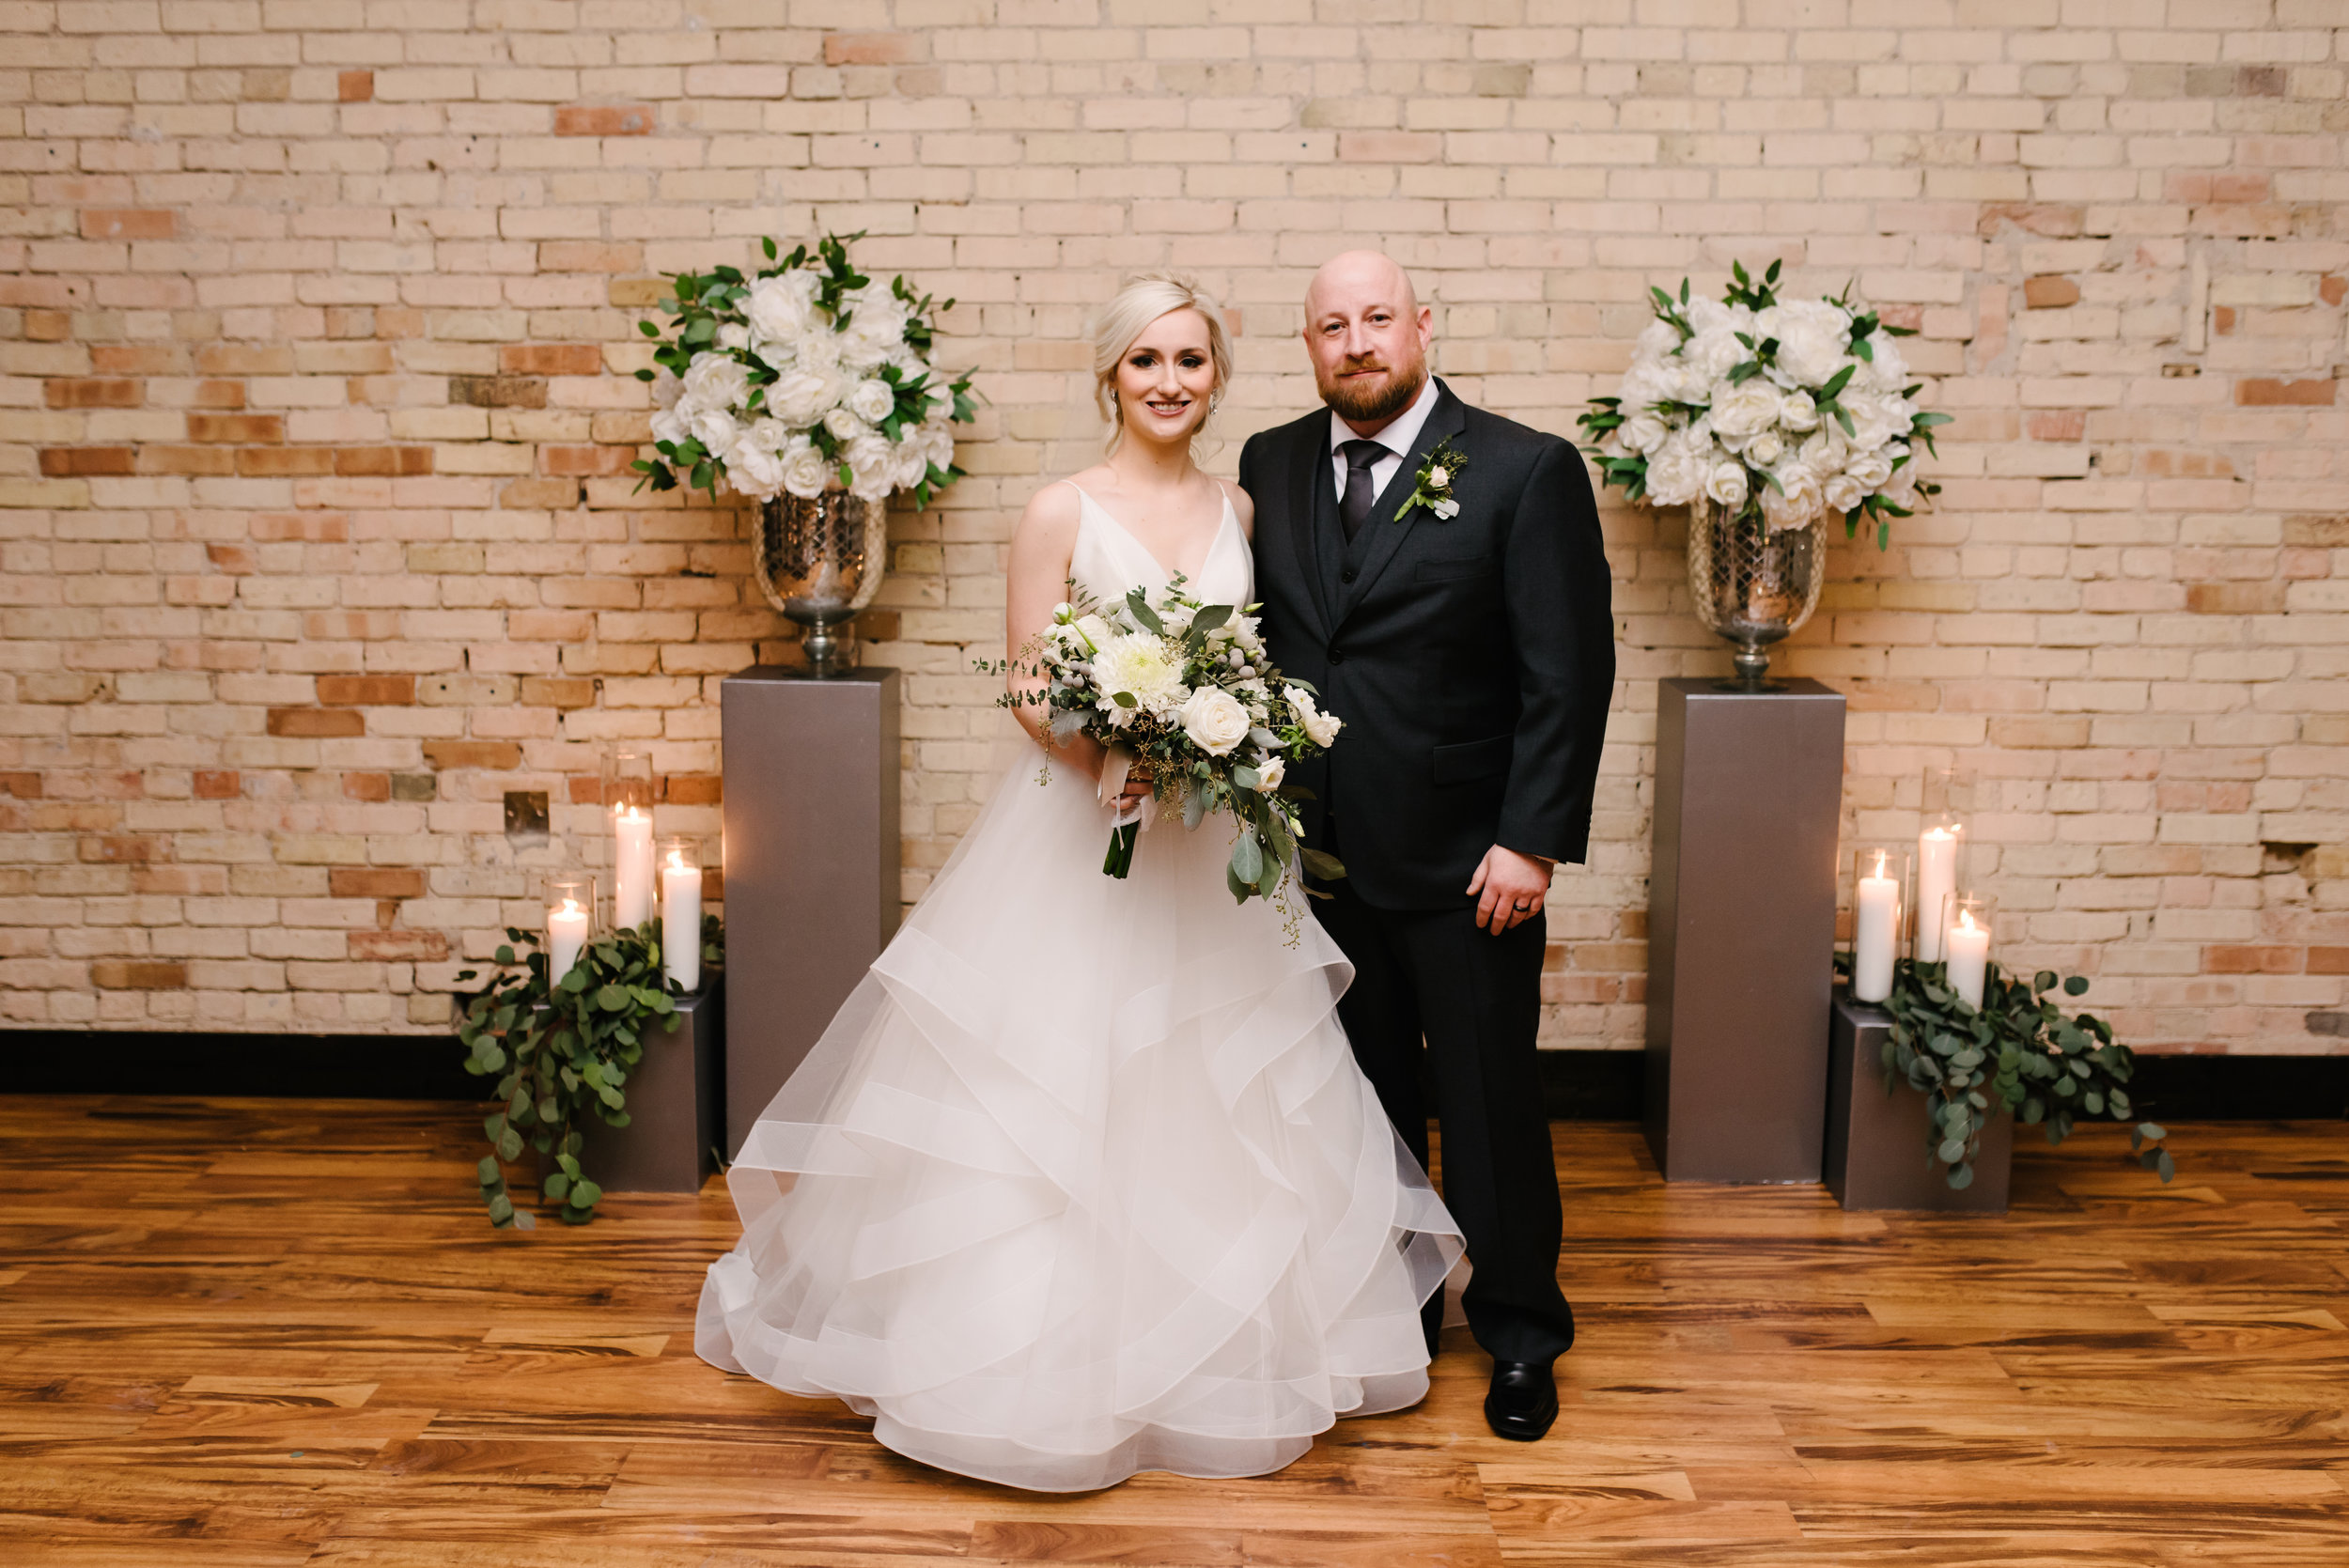 Wesley & Morgan Fisher - January 19, 2019